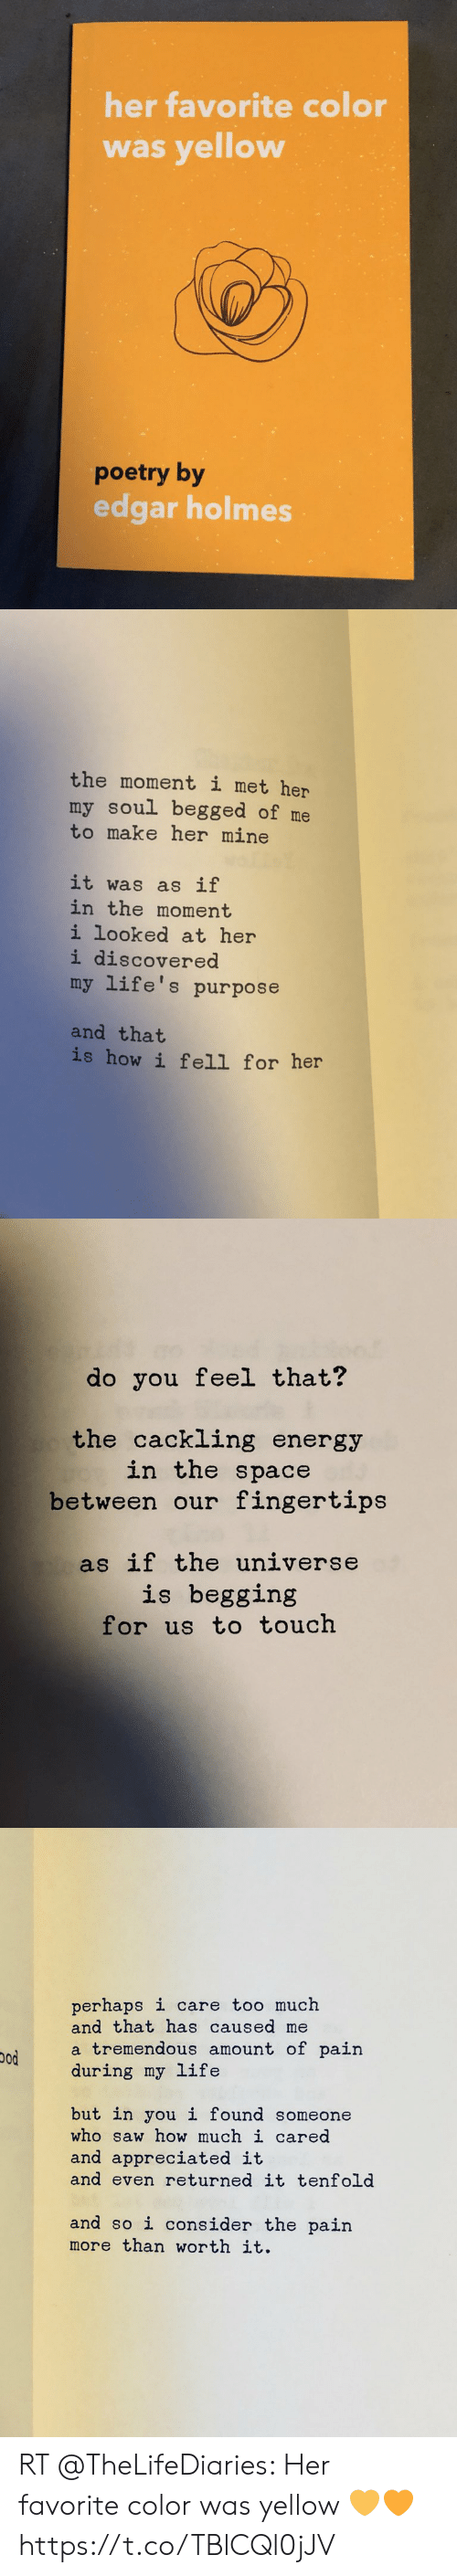 Energy, Life, and Memes: her favorite color  was yellow  poetry by  edgar holmes   the moment i met her  my soul begged of me  to make her mine  it was  as if  in the moment  i looked at her  i discovered  my life's purpose  and that  is how i fell for her   do you feel that?  the cackling energy  in the space  between our fingertips  as if the universe  is begging  for us to touch   perhaps i care too much  and that has caused me  a tremendous amount of pain  during my life  but in you i found someone  who saw how much i cared  and appreciated it  and even returned it tenfold  and so i consider the pain  more than worth it. RT @TheLifeDiaries: Her favorite color was yellow 💛🧡 https://t.co/TBlCQl0jJV